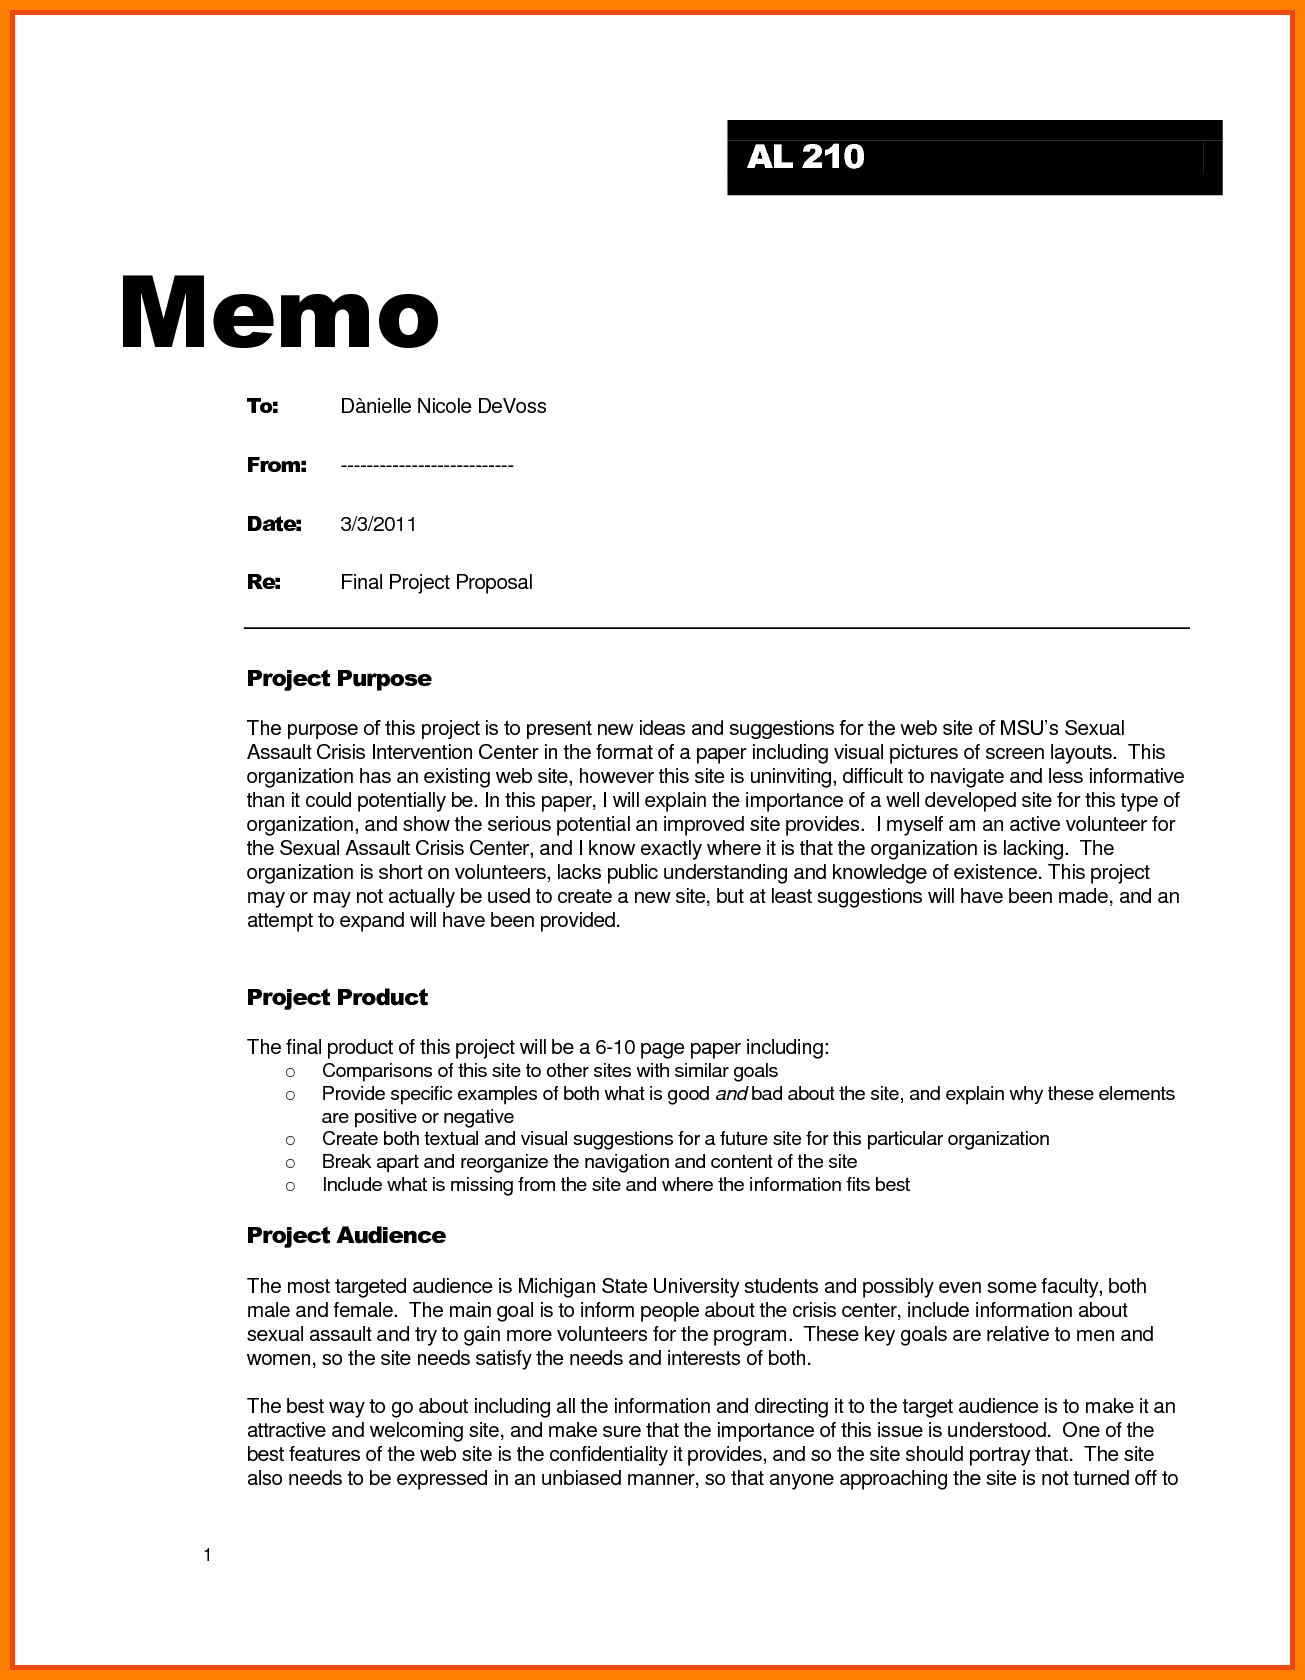 memorandum business letter resume emails examples md nahiduzzaman